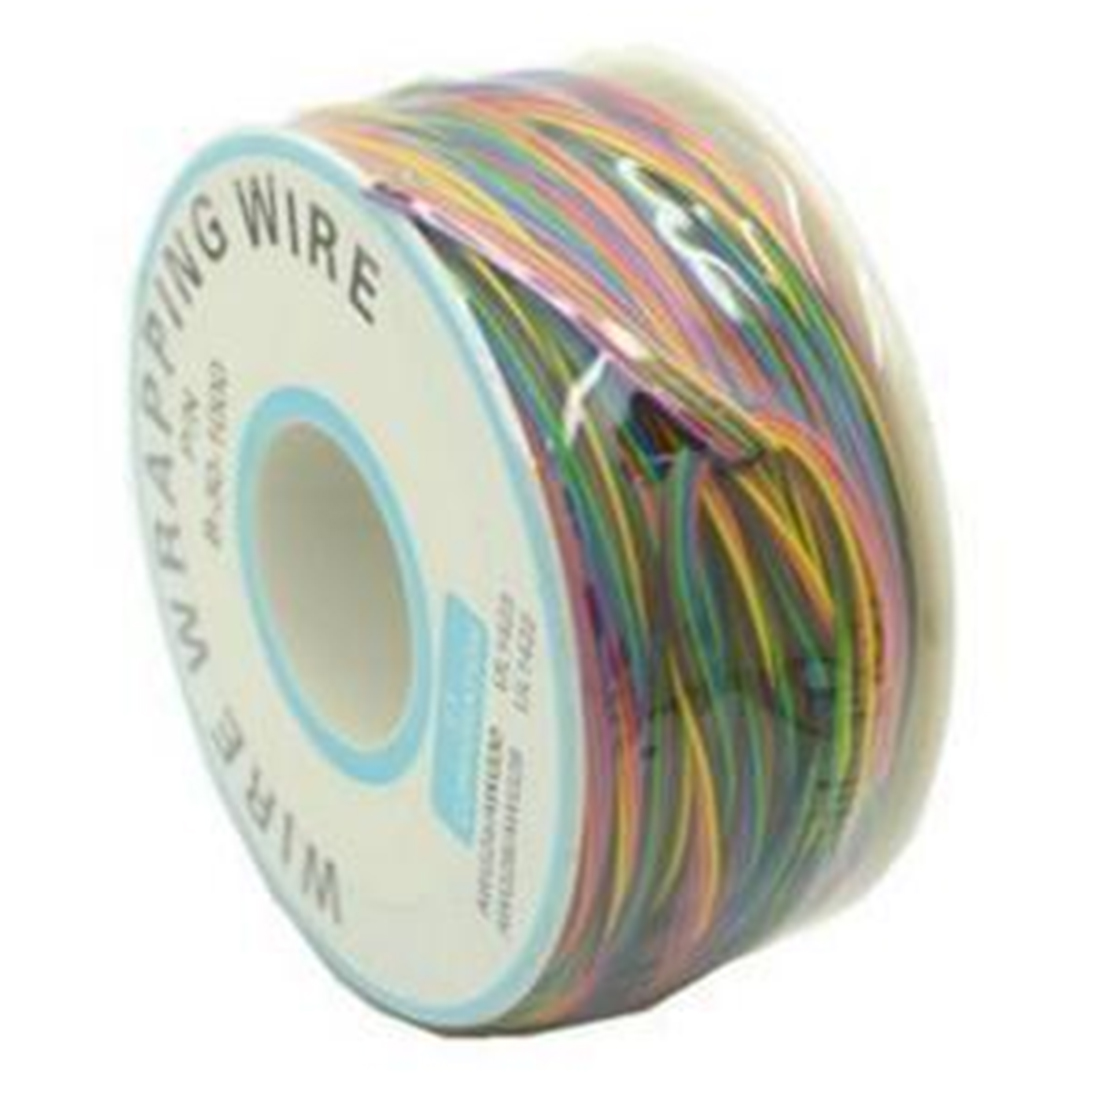 One Roll 8 Colors 30AWG Wire Wrapping Wire Tinned Copper Solid PVC InsulationOne Roll 8 Colors 30AWG Wire Wrapping Wire Tinned Copper Solid PVC Insulation